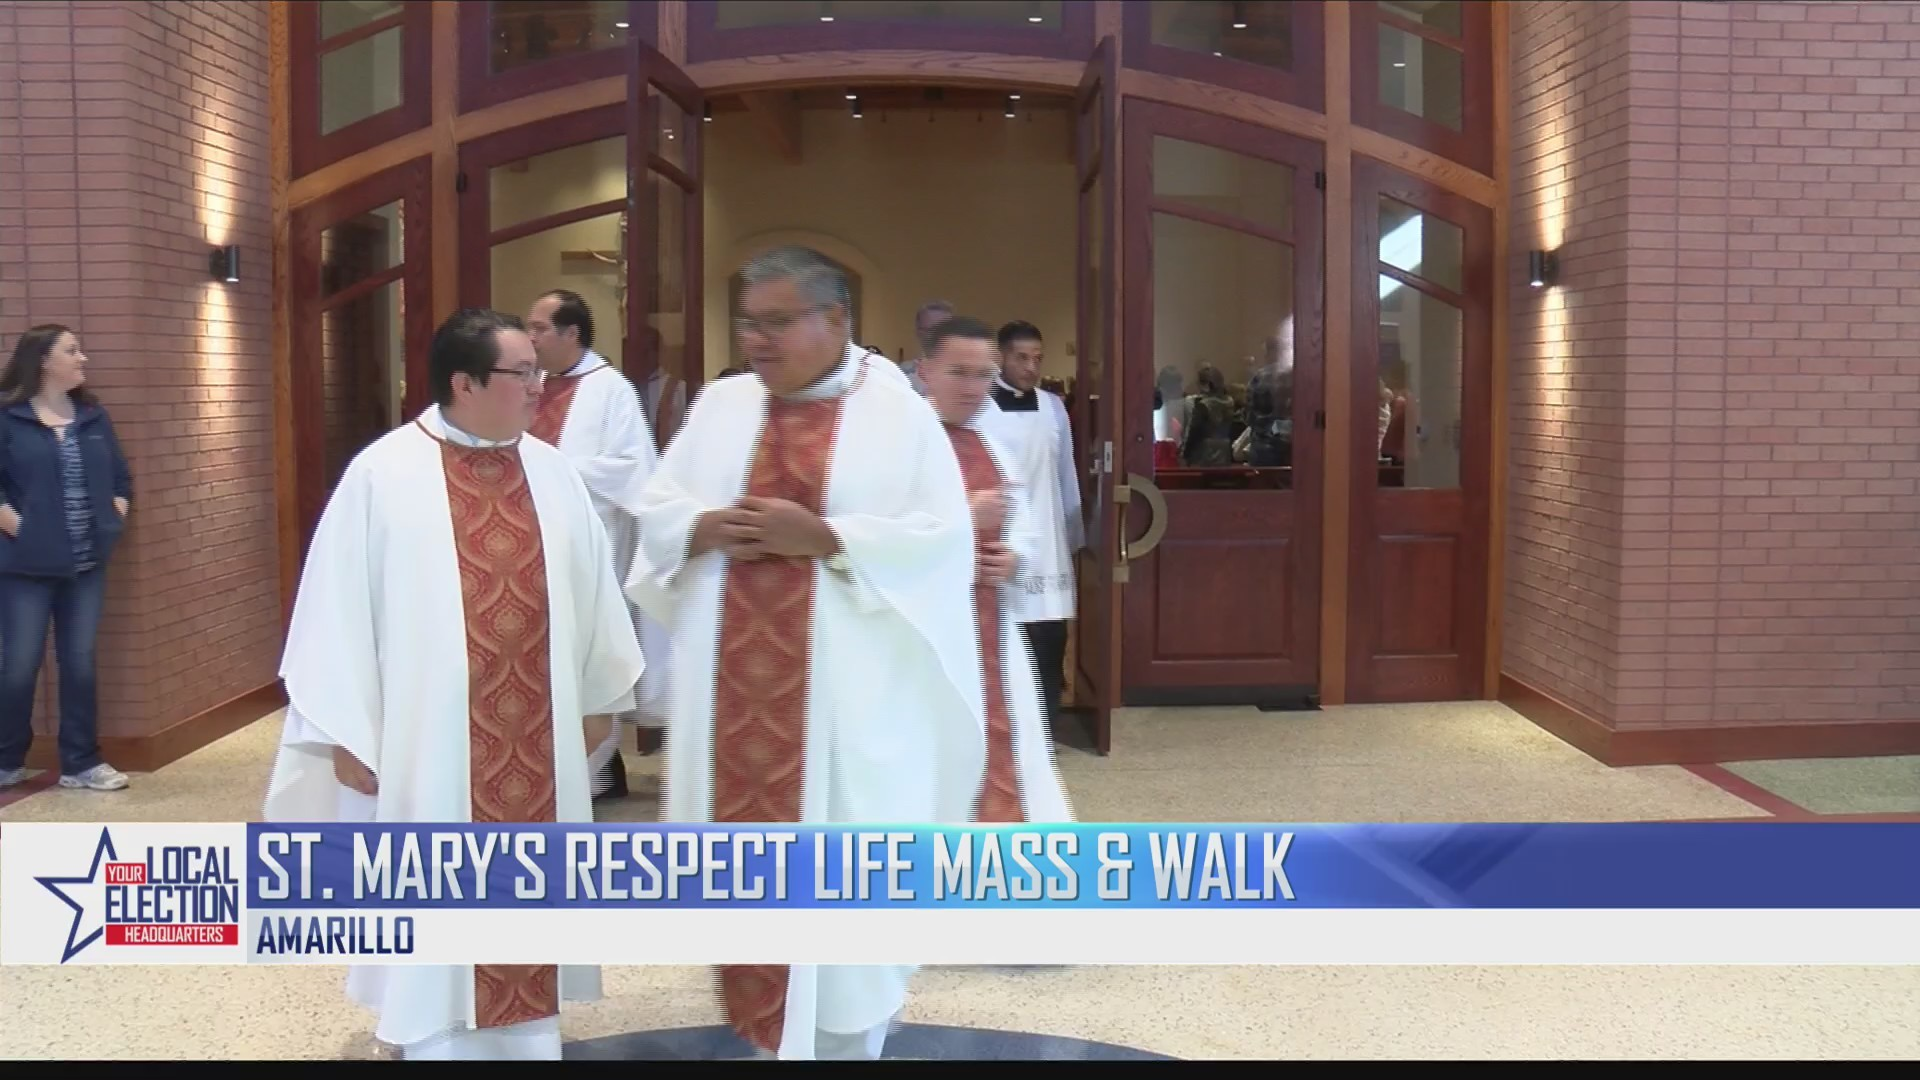 St. Mary's Respect Life Mass and Walk